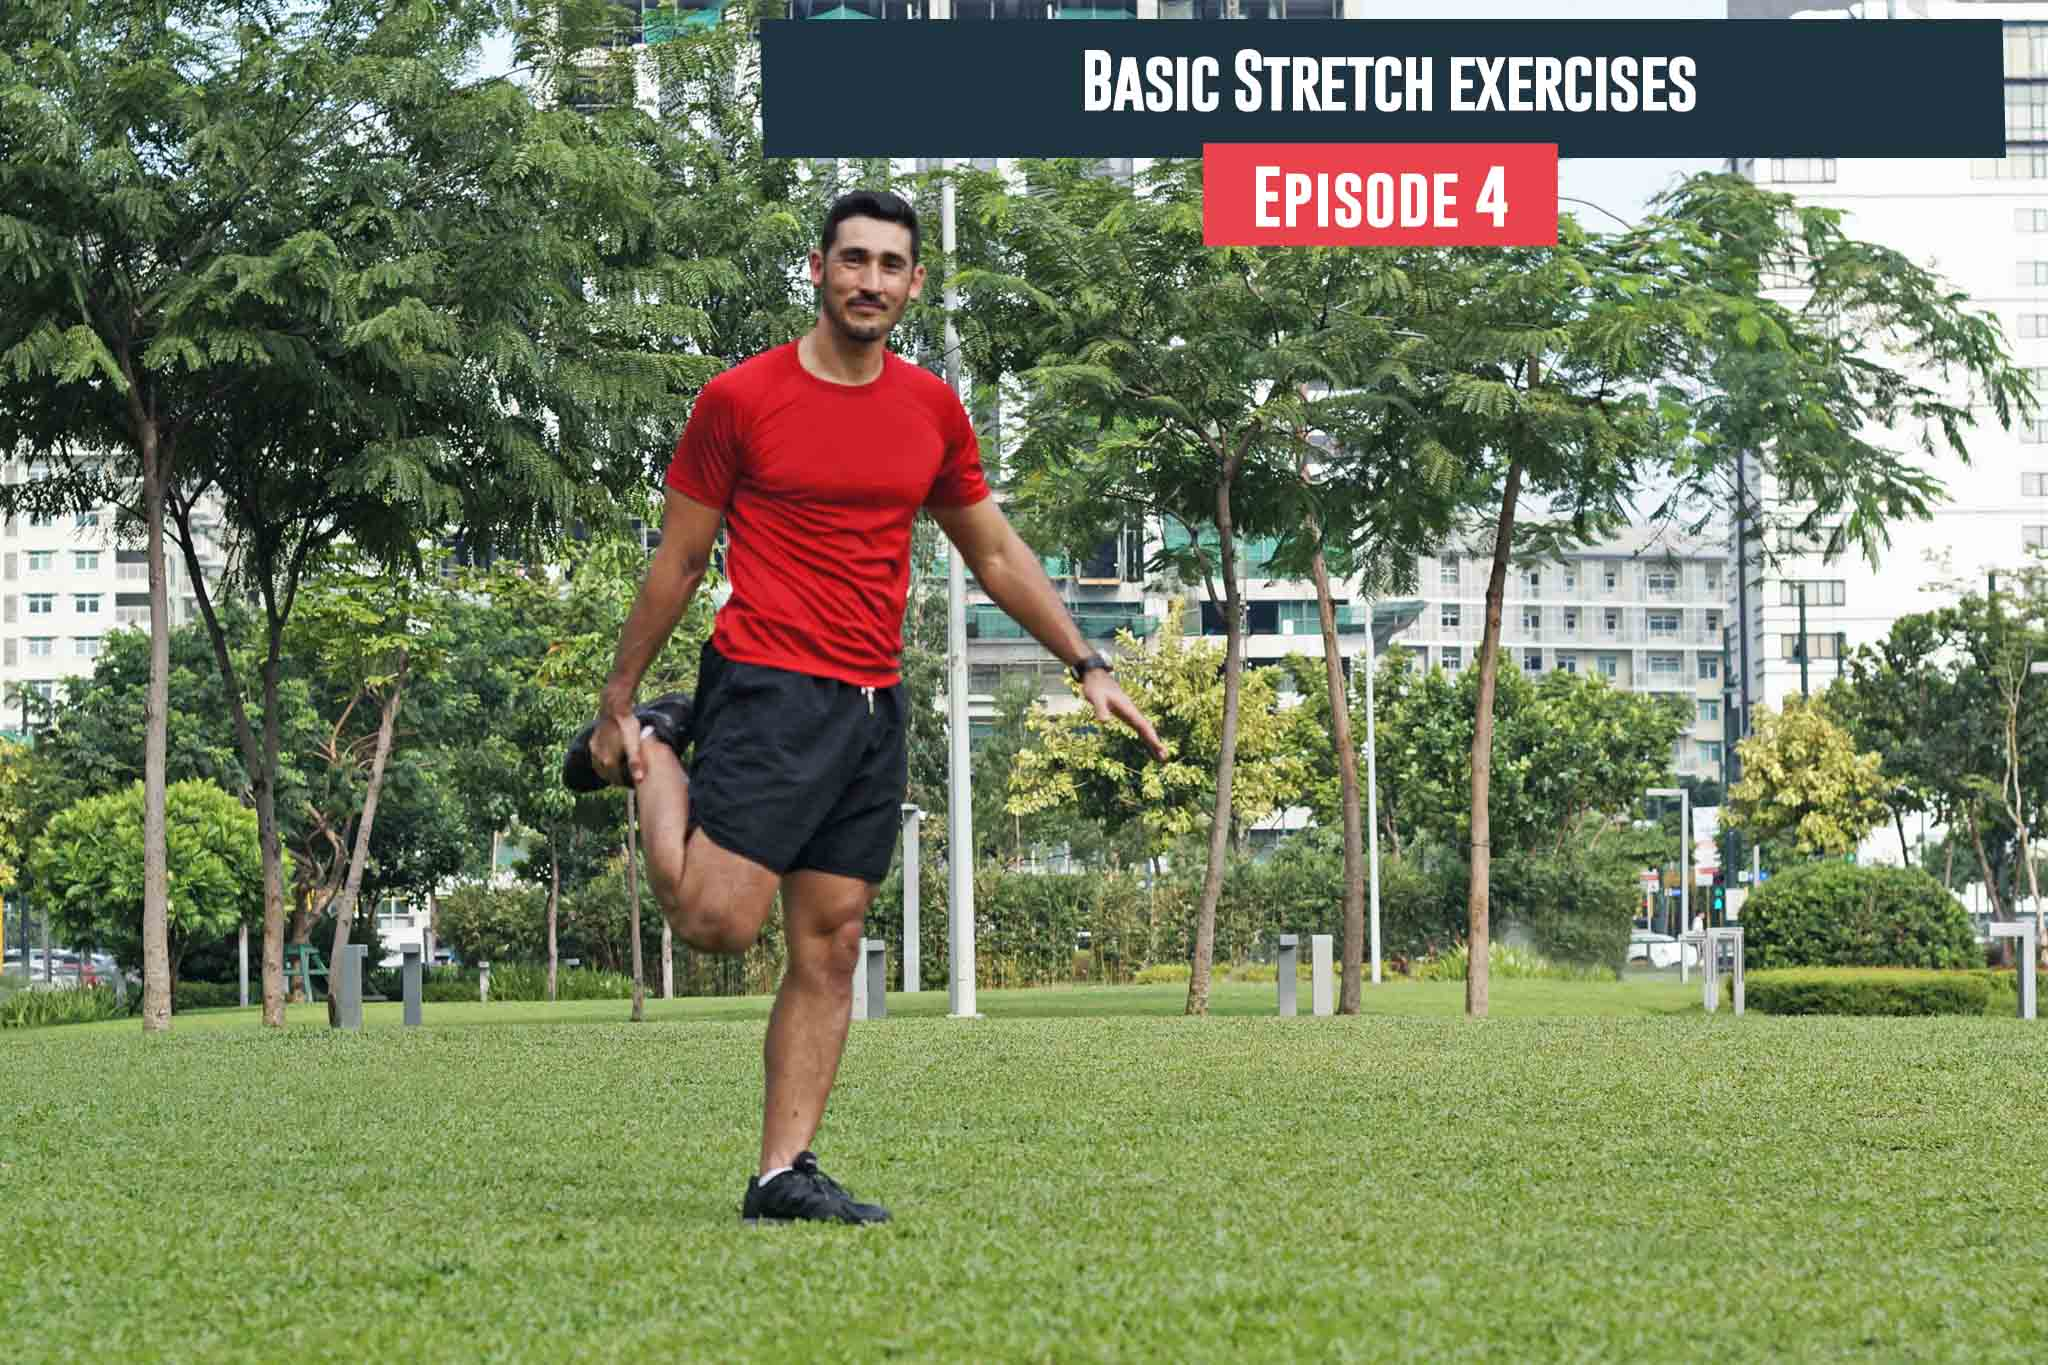 Basic Stretch Exercises